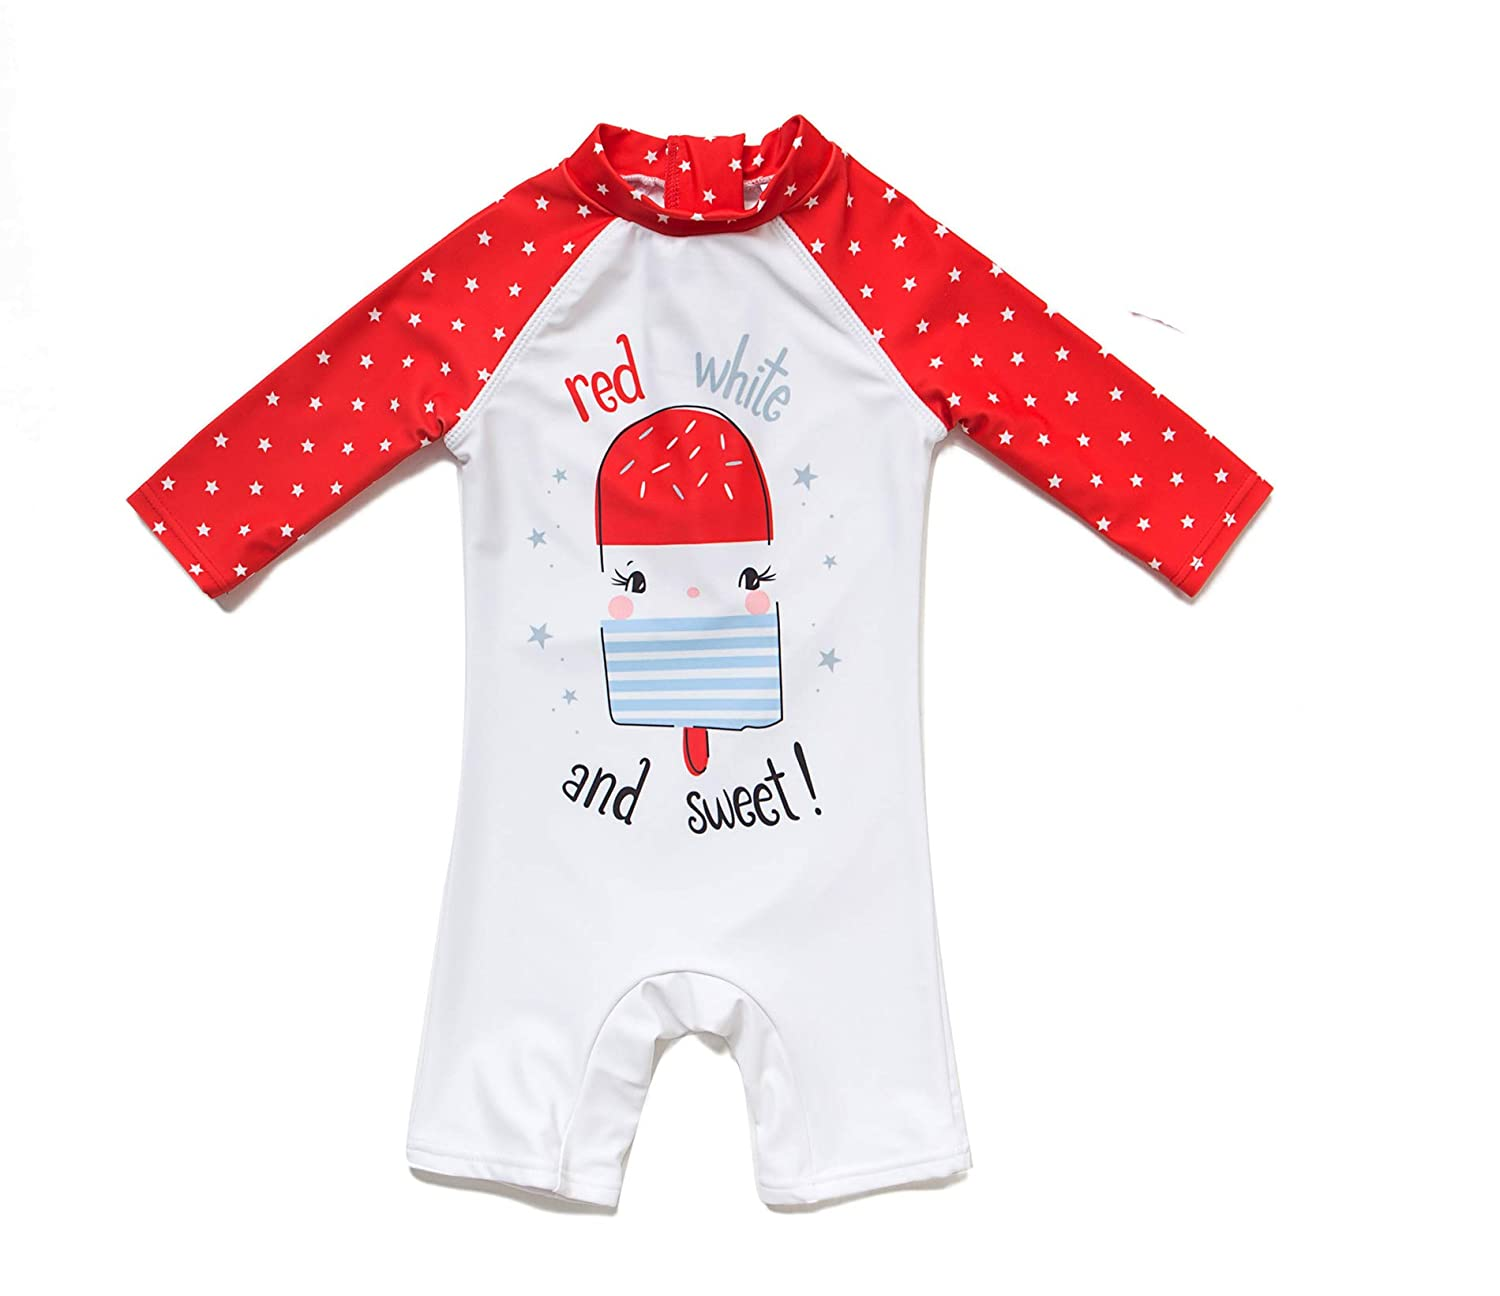 Red Stripe,18-24Months Bonverano Baby Girls UPF 50 UV Protection One Pieces Sunsuit with Sun Cap